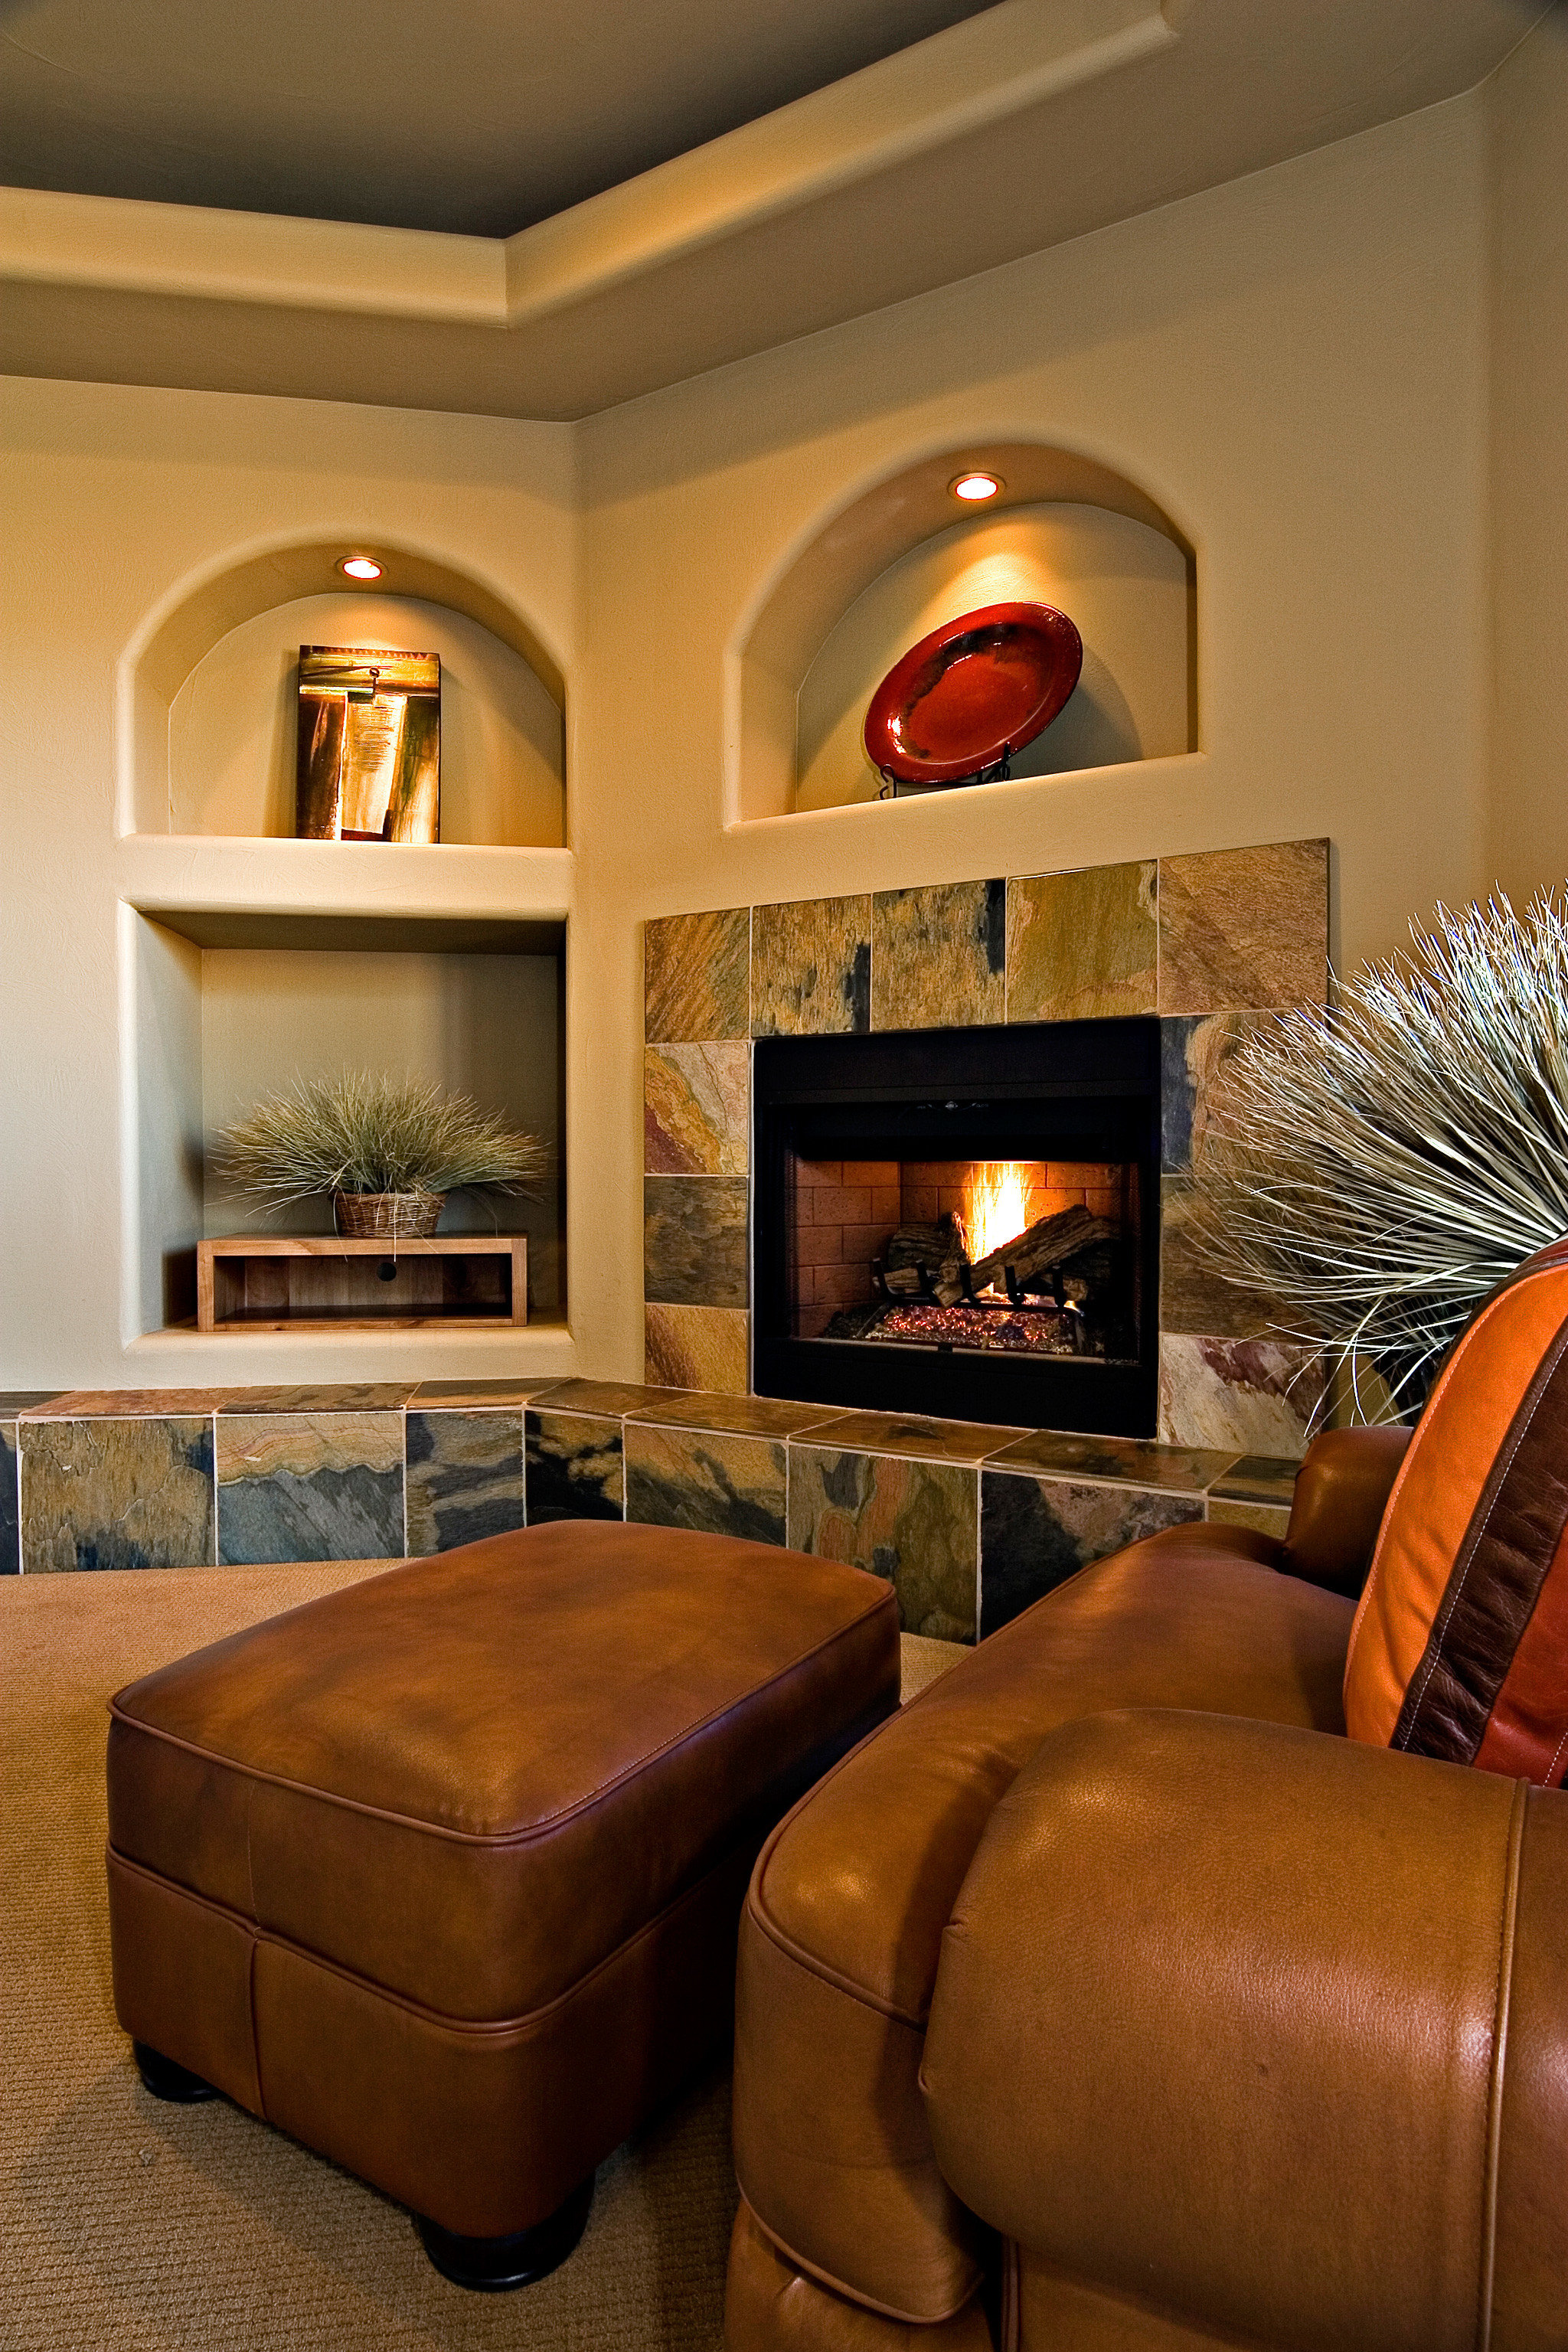 Cultural Fireplace Golf Lounge Nature Resort Scenic views living room home hardwood basement Suite